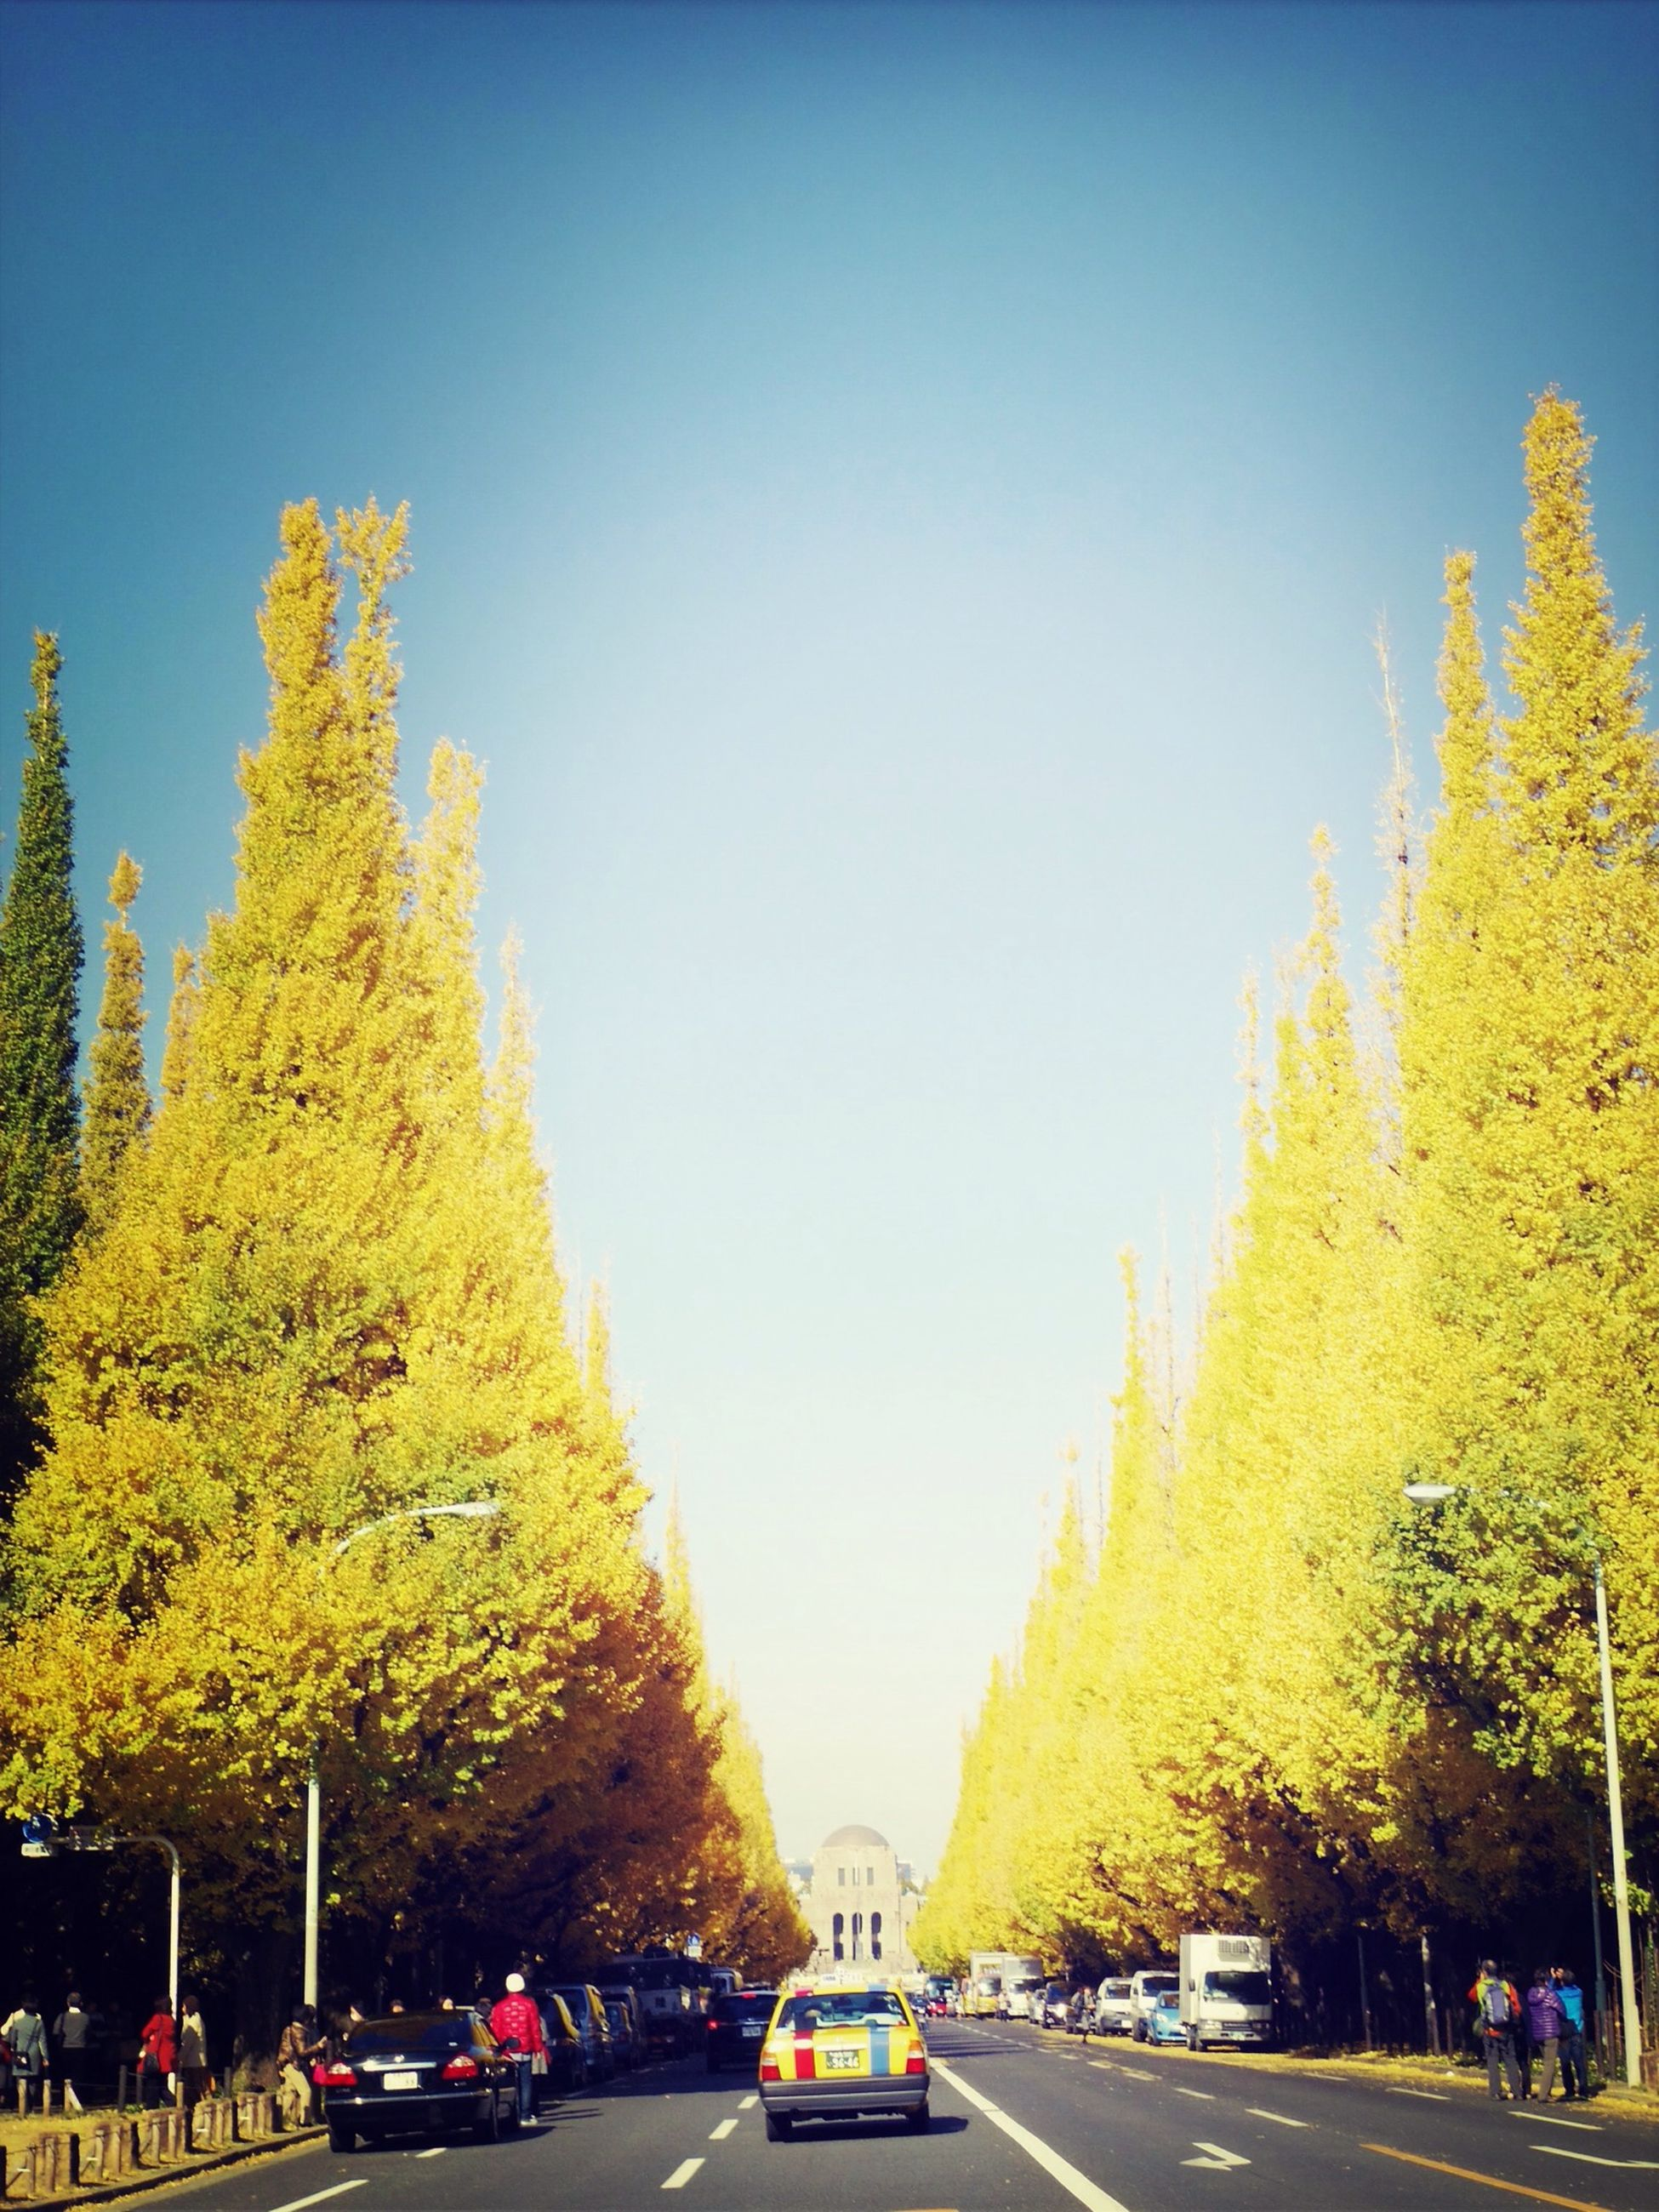 tree, clear sky, transportation, road, growth, the way forward, copy space, street, season, autumn, nature, yellow, car, land vehicle, outdoors, change, mode of transport, beauty in nature, day, plant